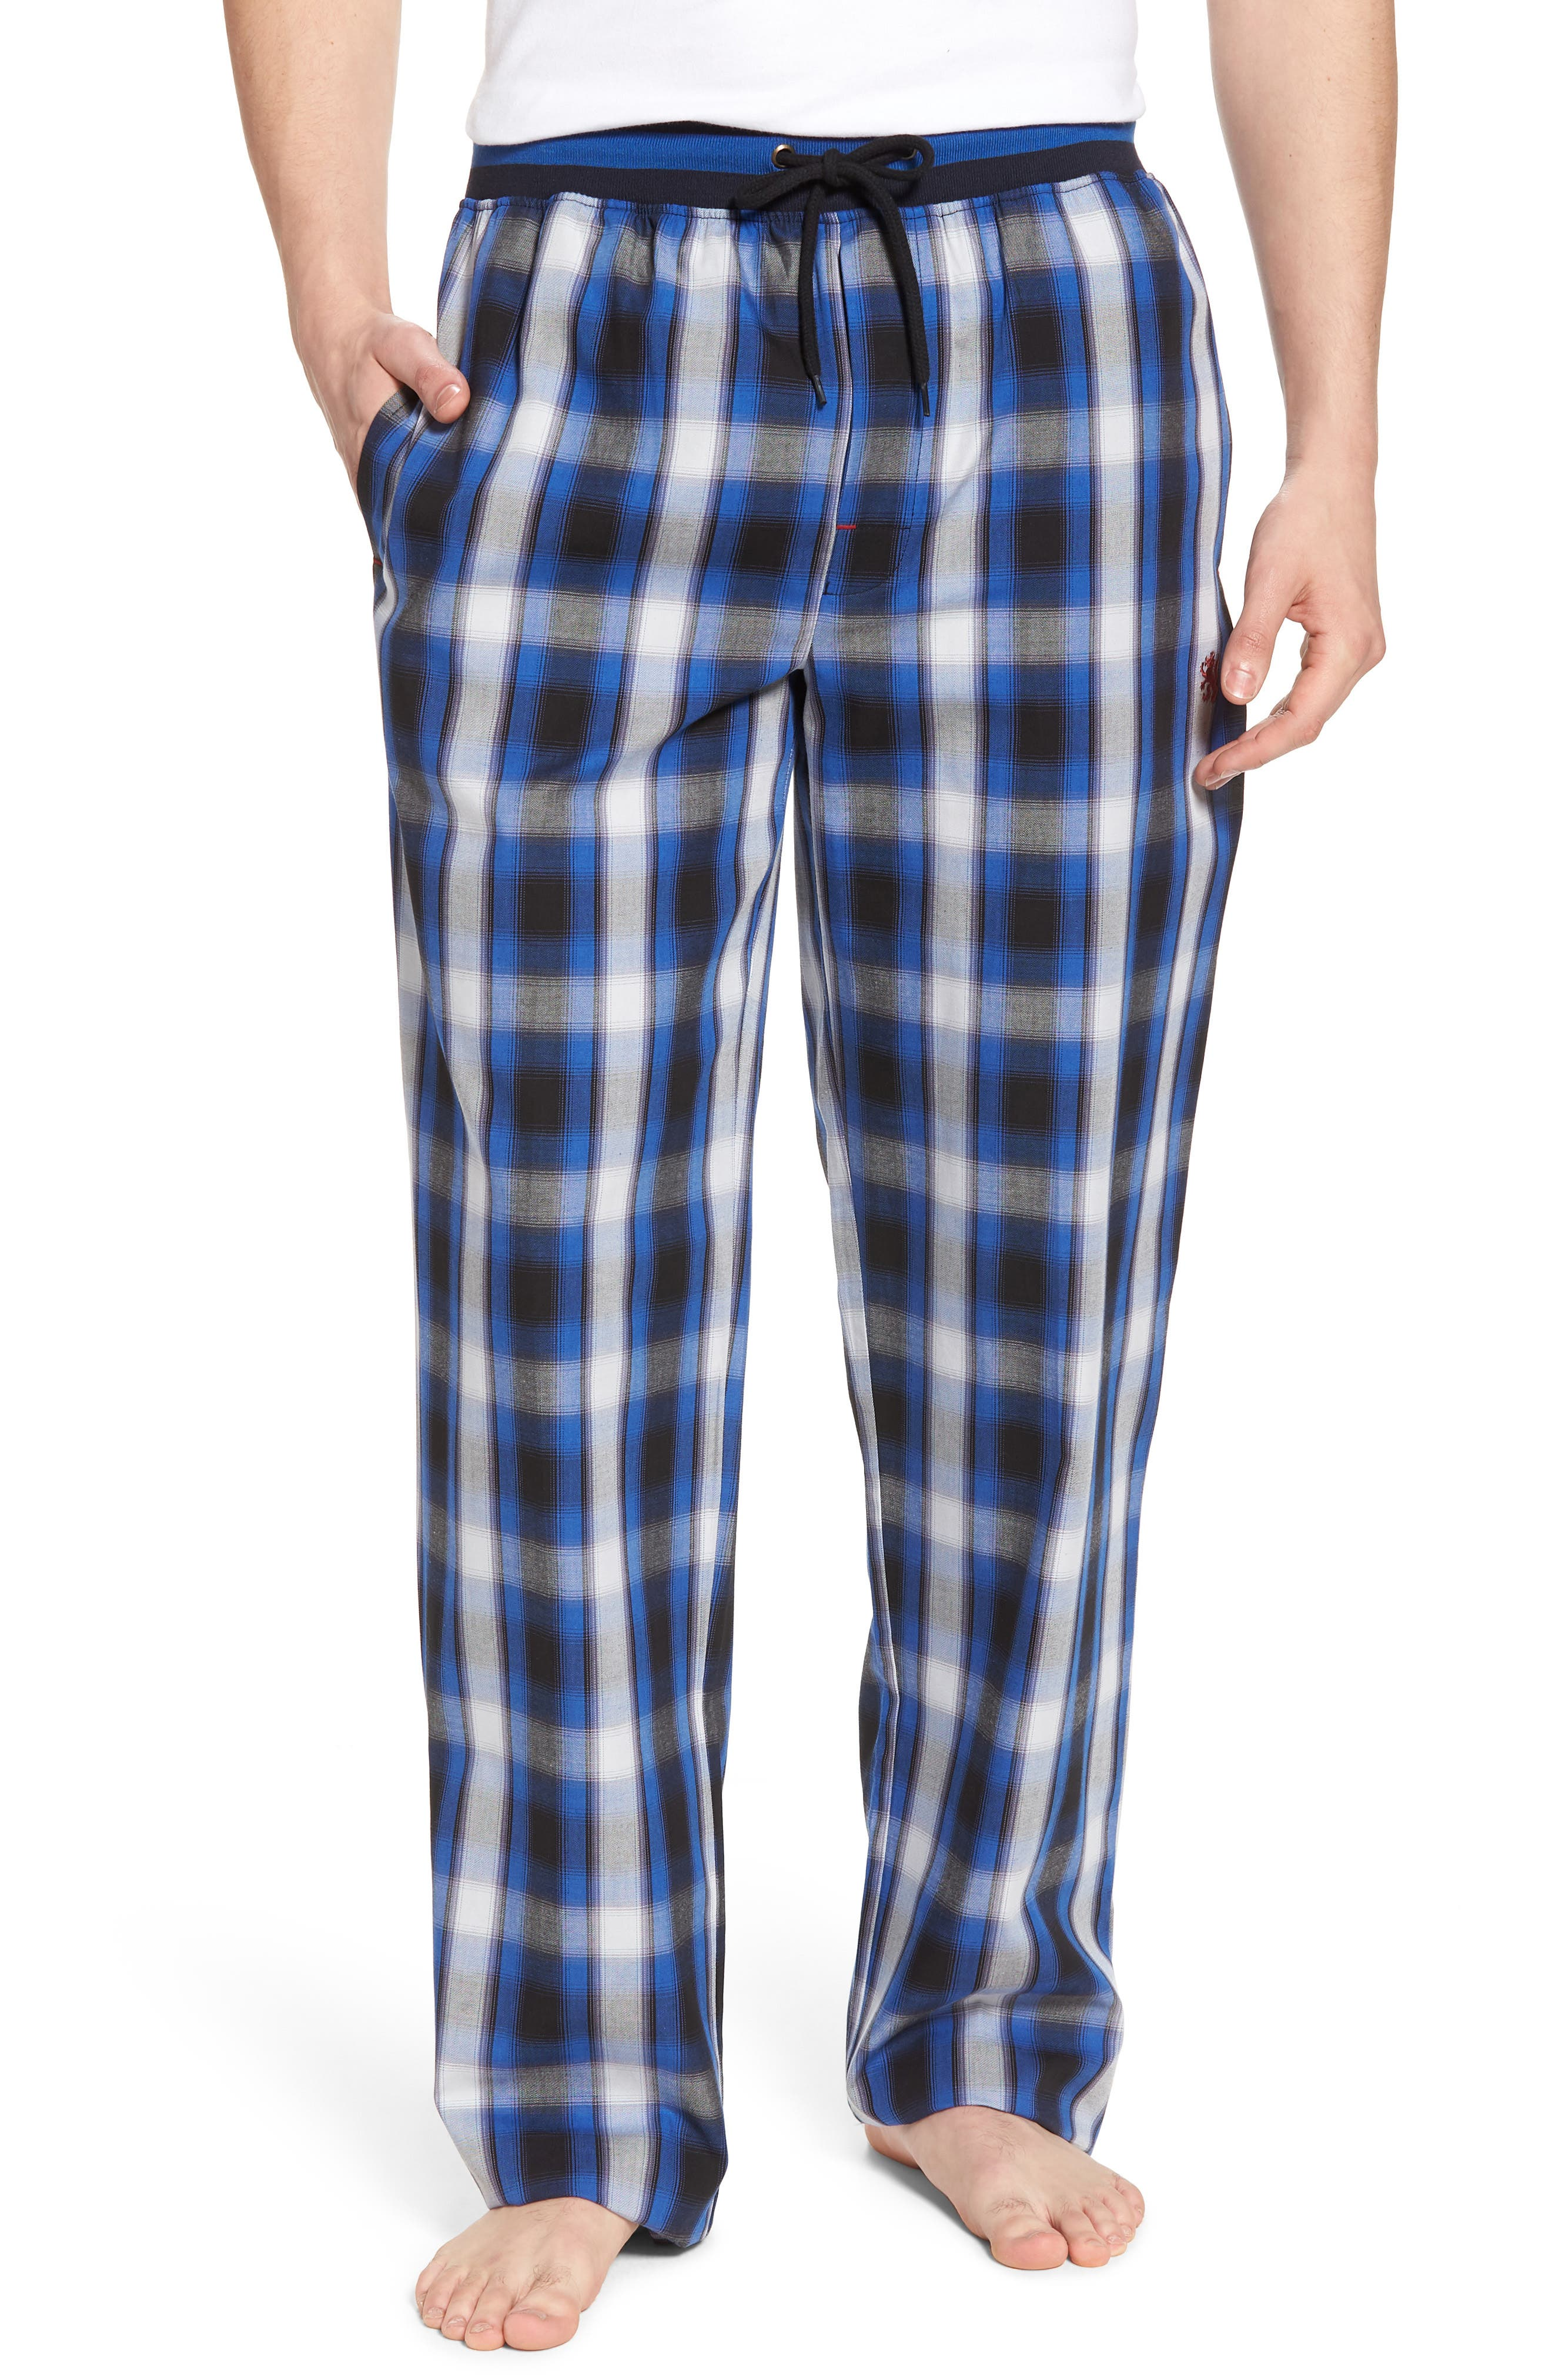 Urbane Lounge Pants,                         Main,                         color, 001